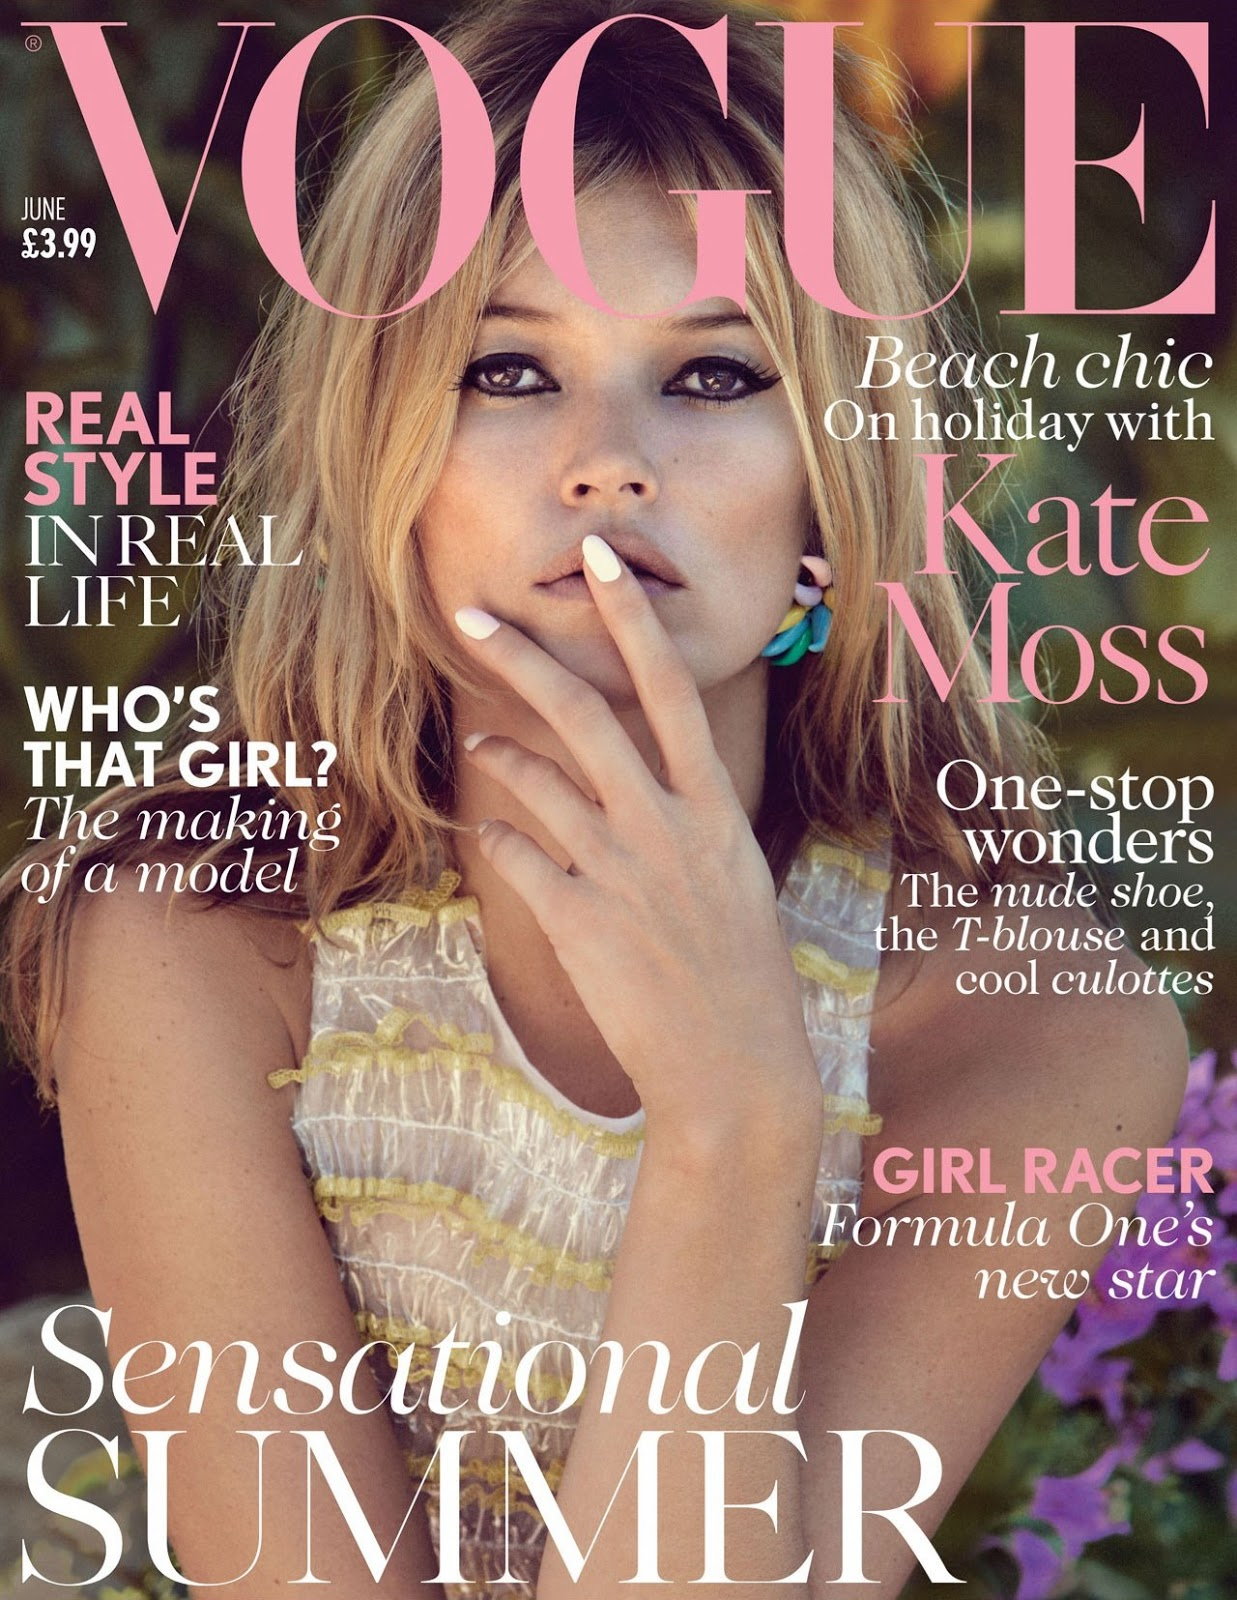 kate-moss-by-patrick-demarchelier-28uk-vogue-june-2013-29.jpg